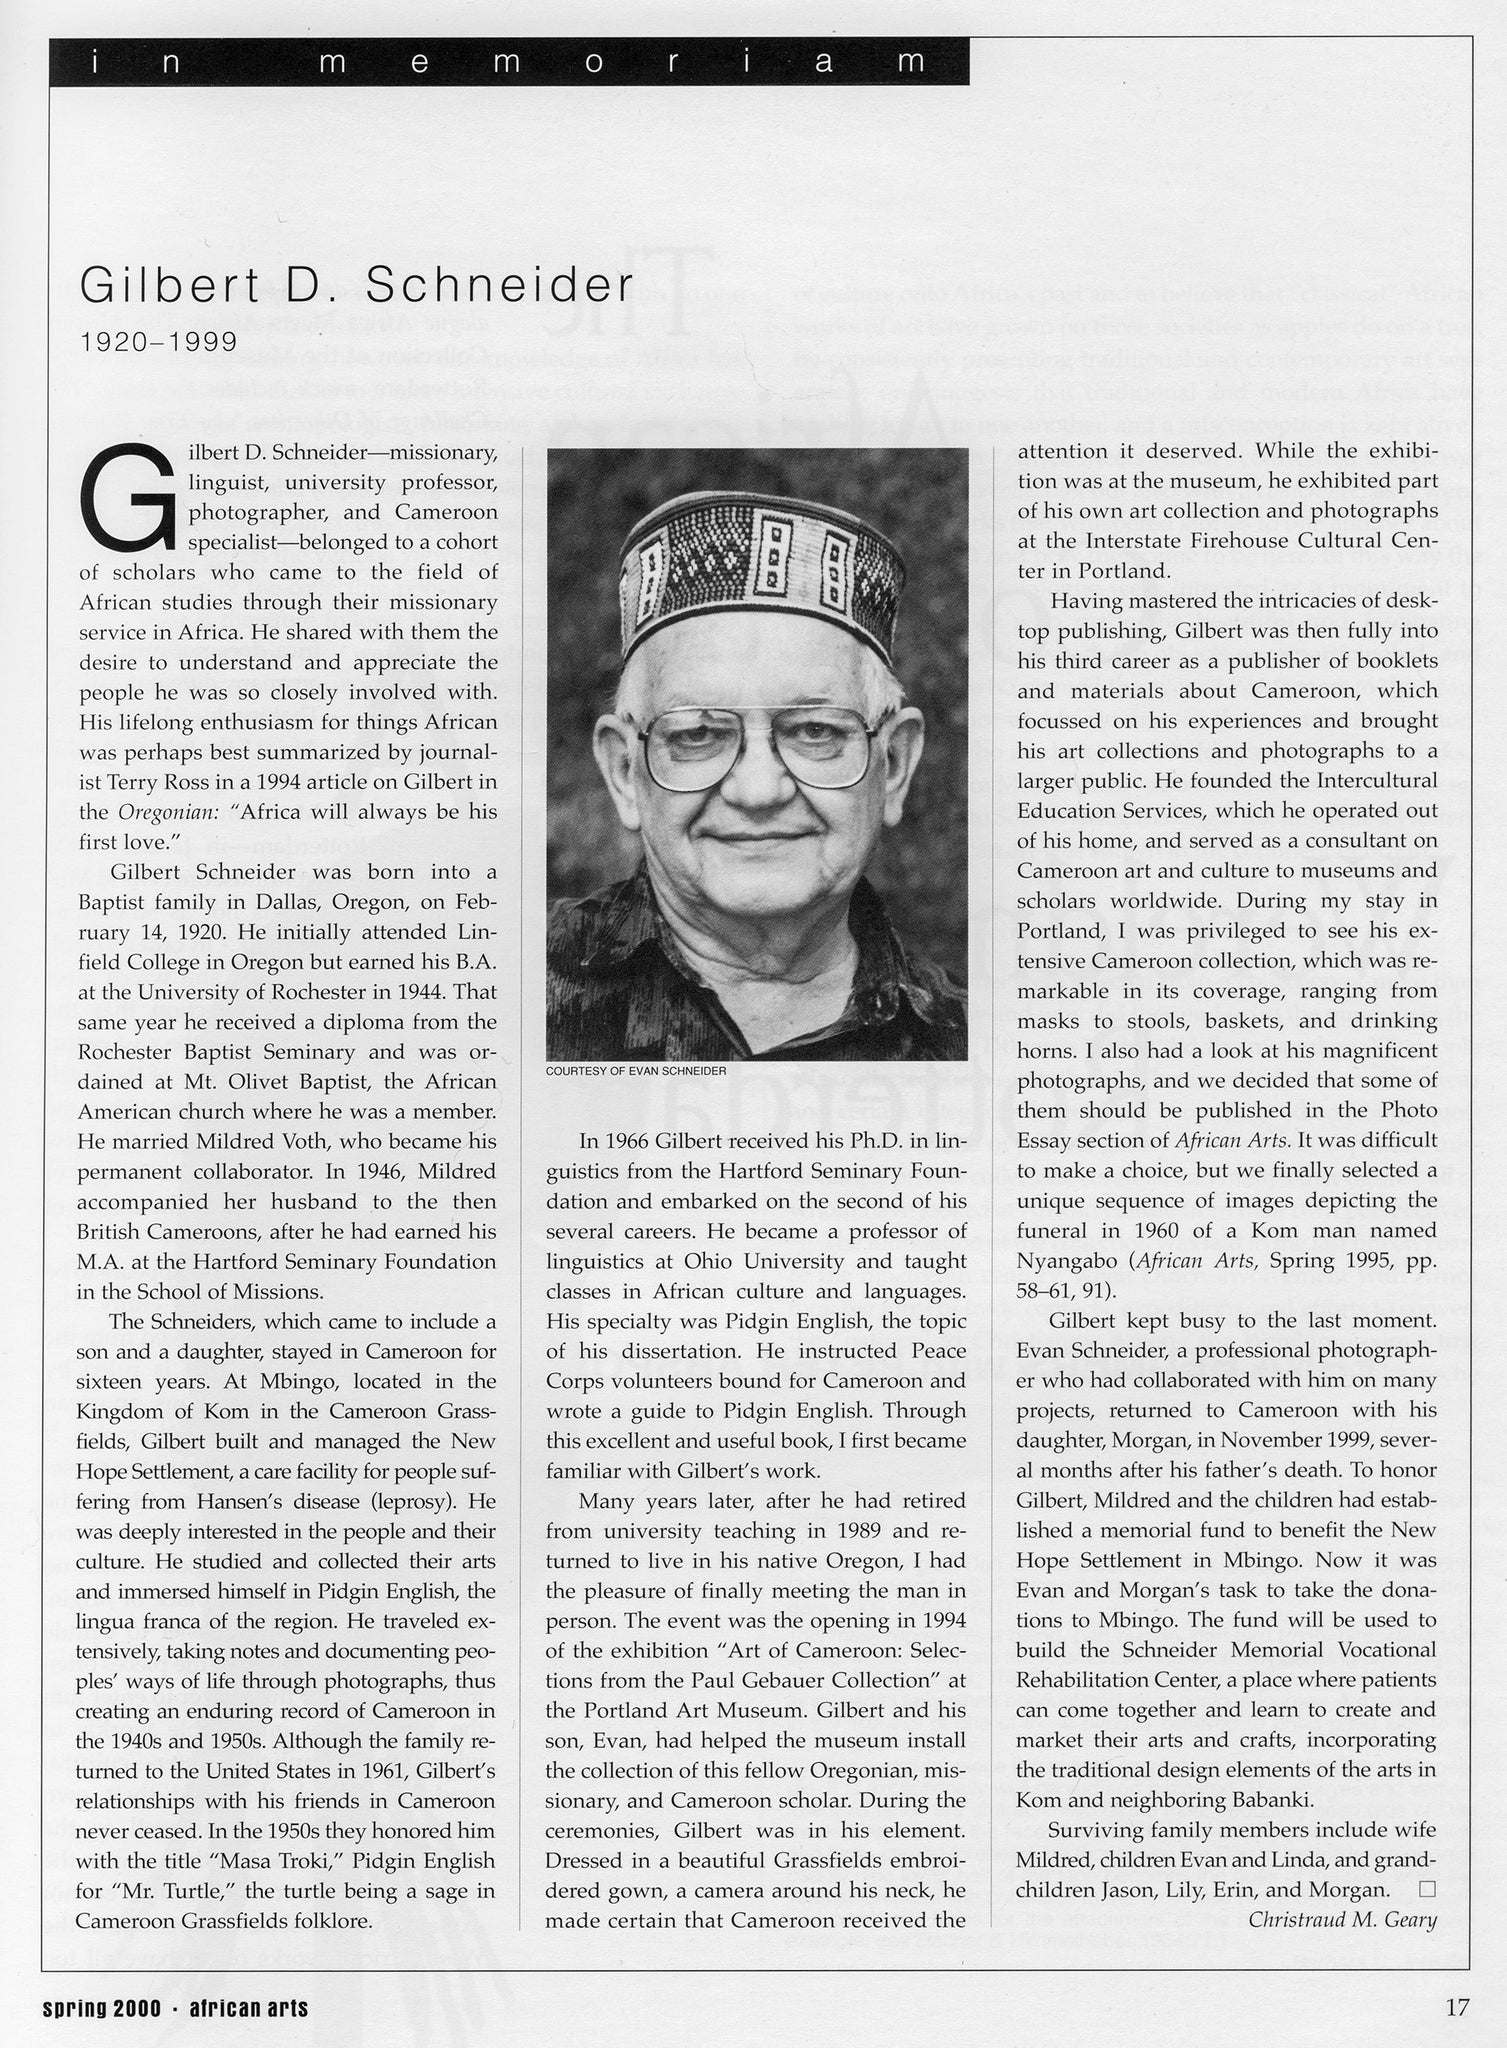 Gilbert D. Schneider Obituary written by Christraud M. Geary. Permission for use received from MIT